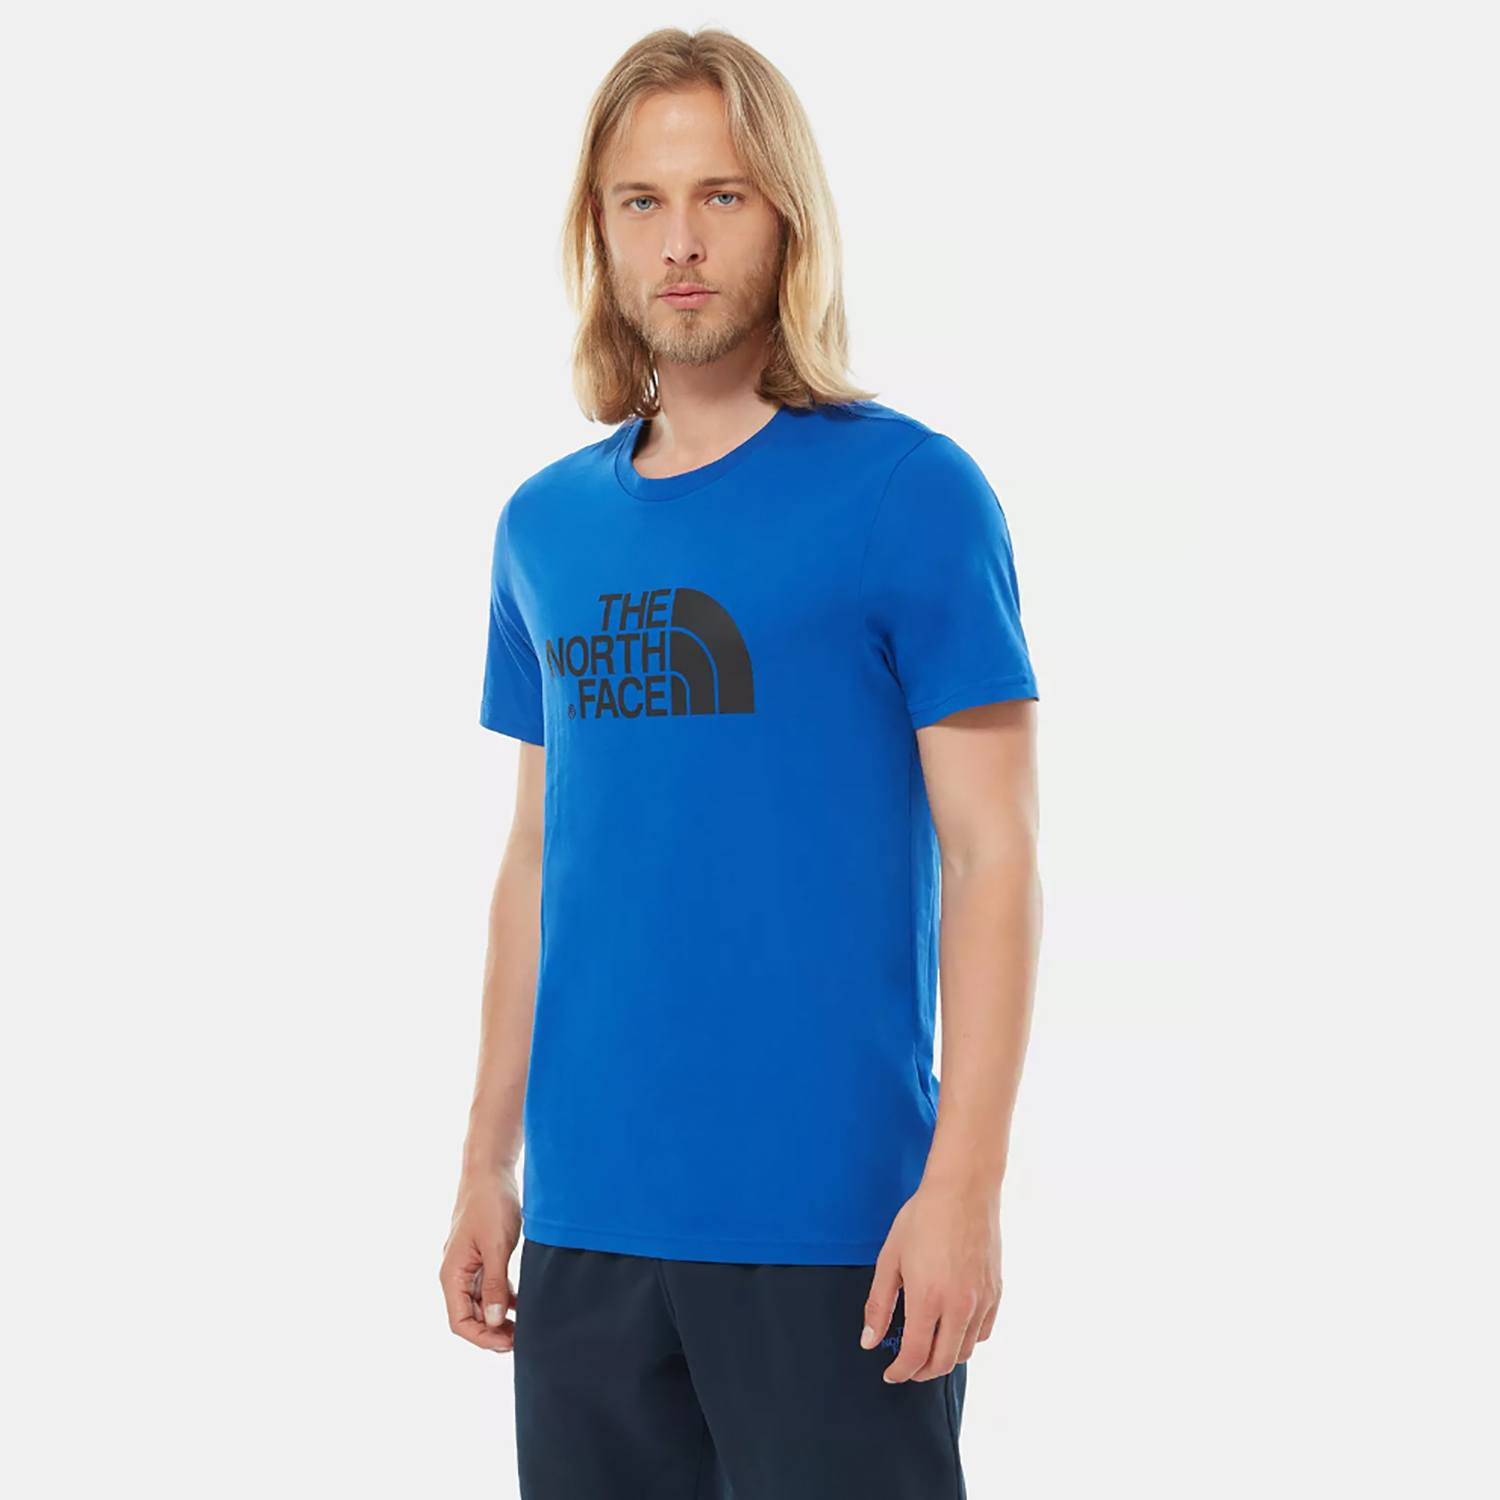 THE NORTH FACE M S/S EASY TEE (9000036563_41090)